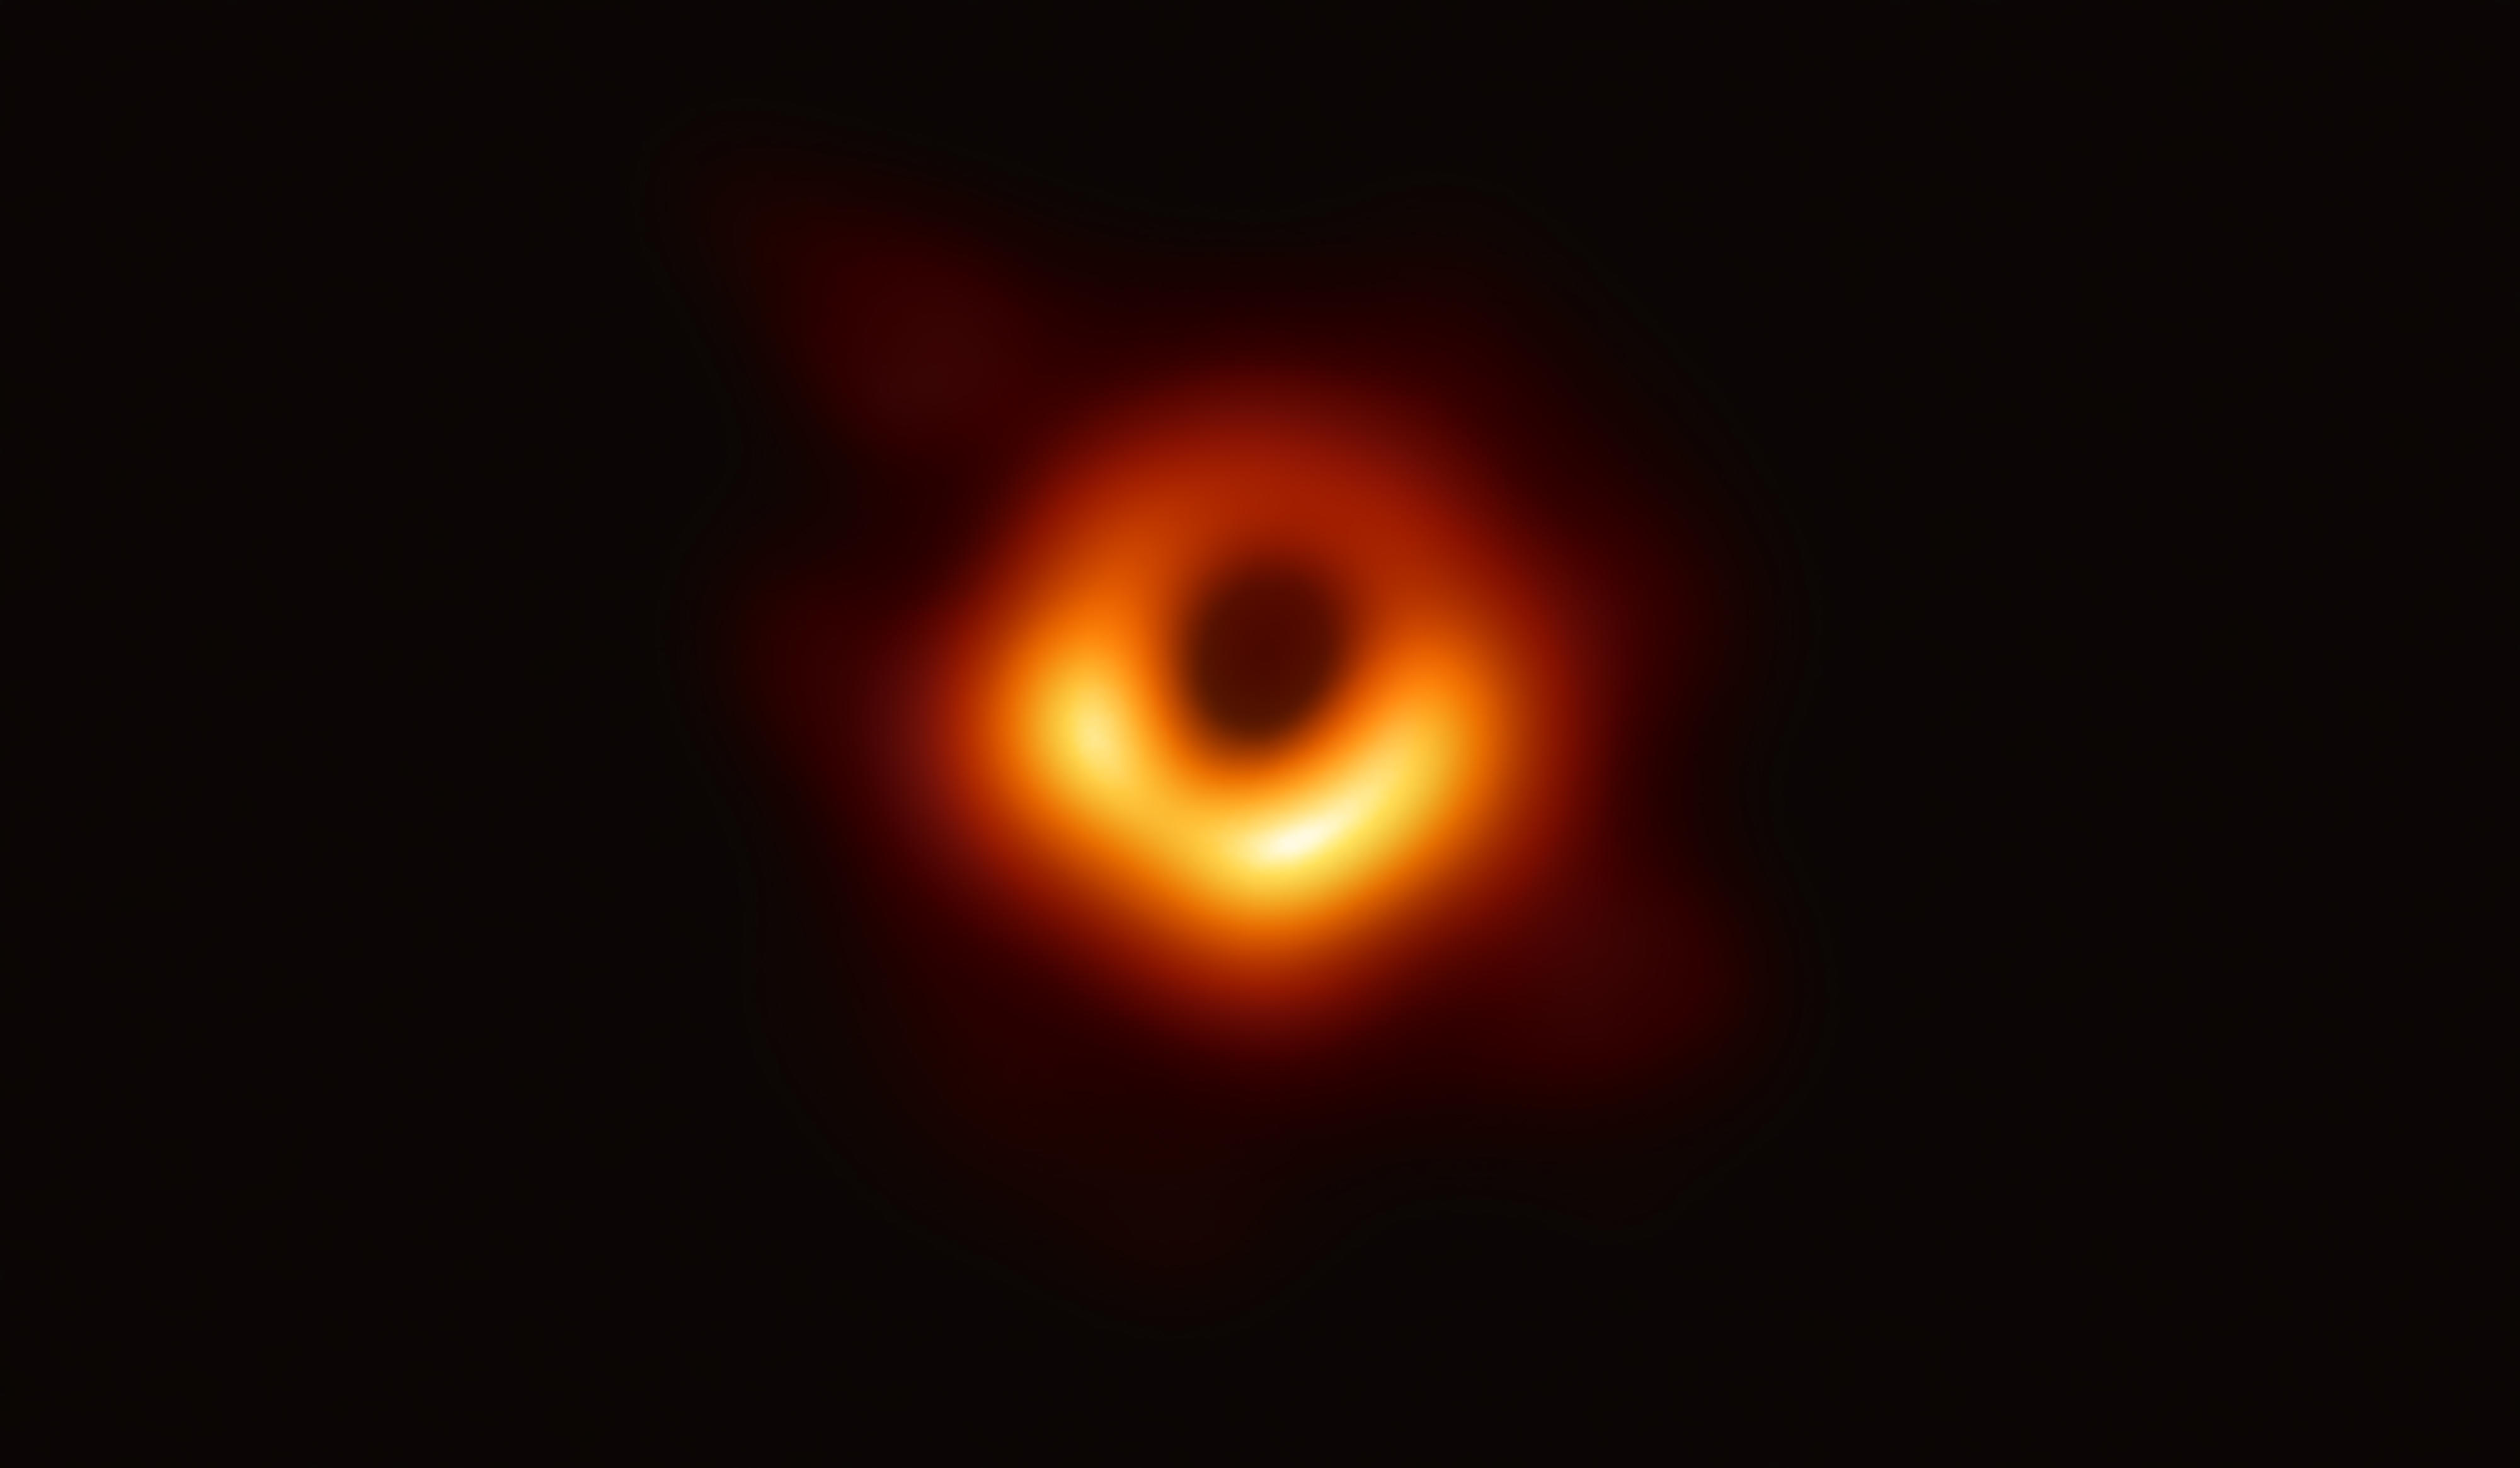 The first-ever image of a black hole, captured with the planetwide virtual array called the Event Horizon Telescope